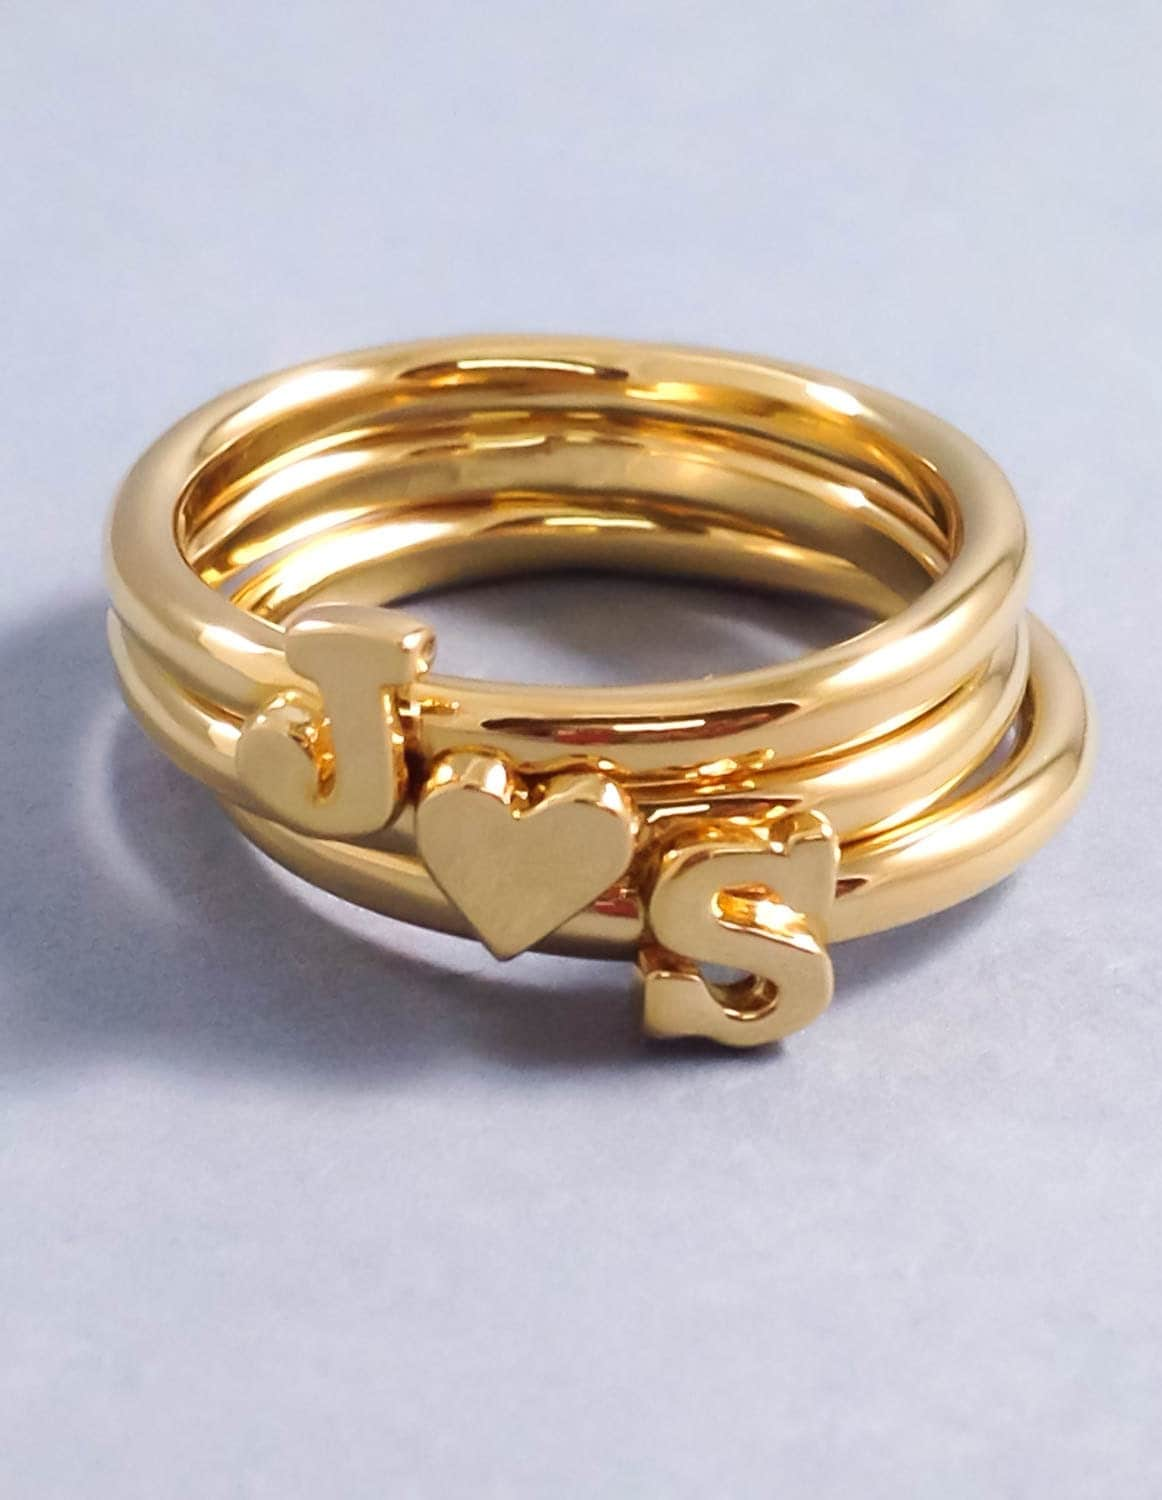 How To Make A Custom Initial Ring